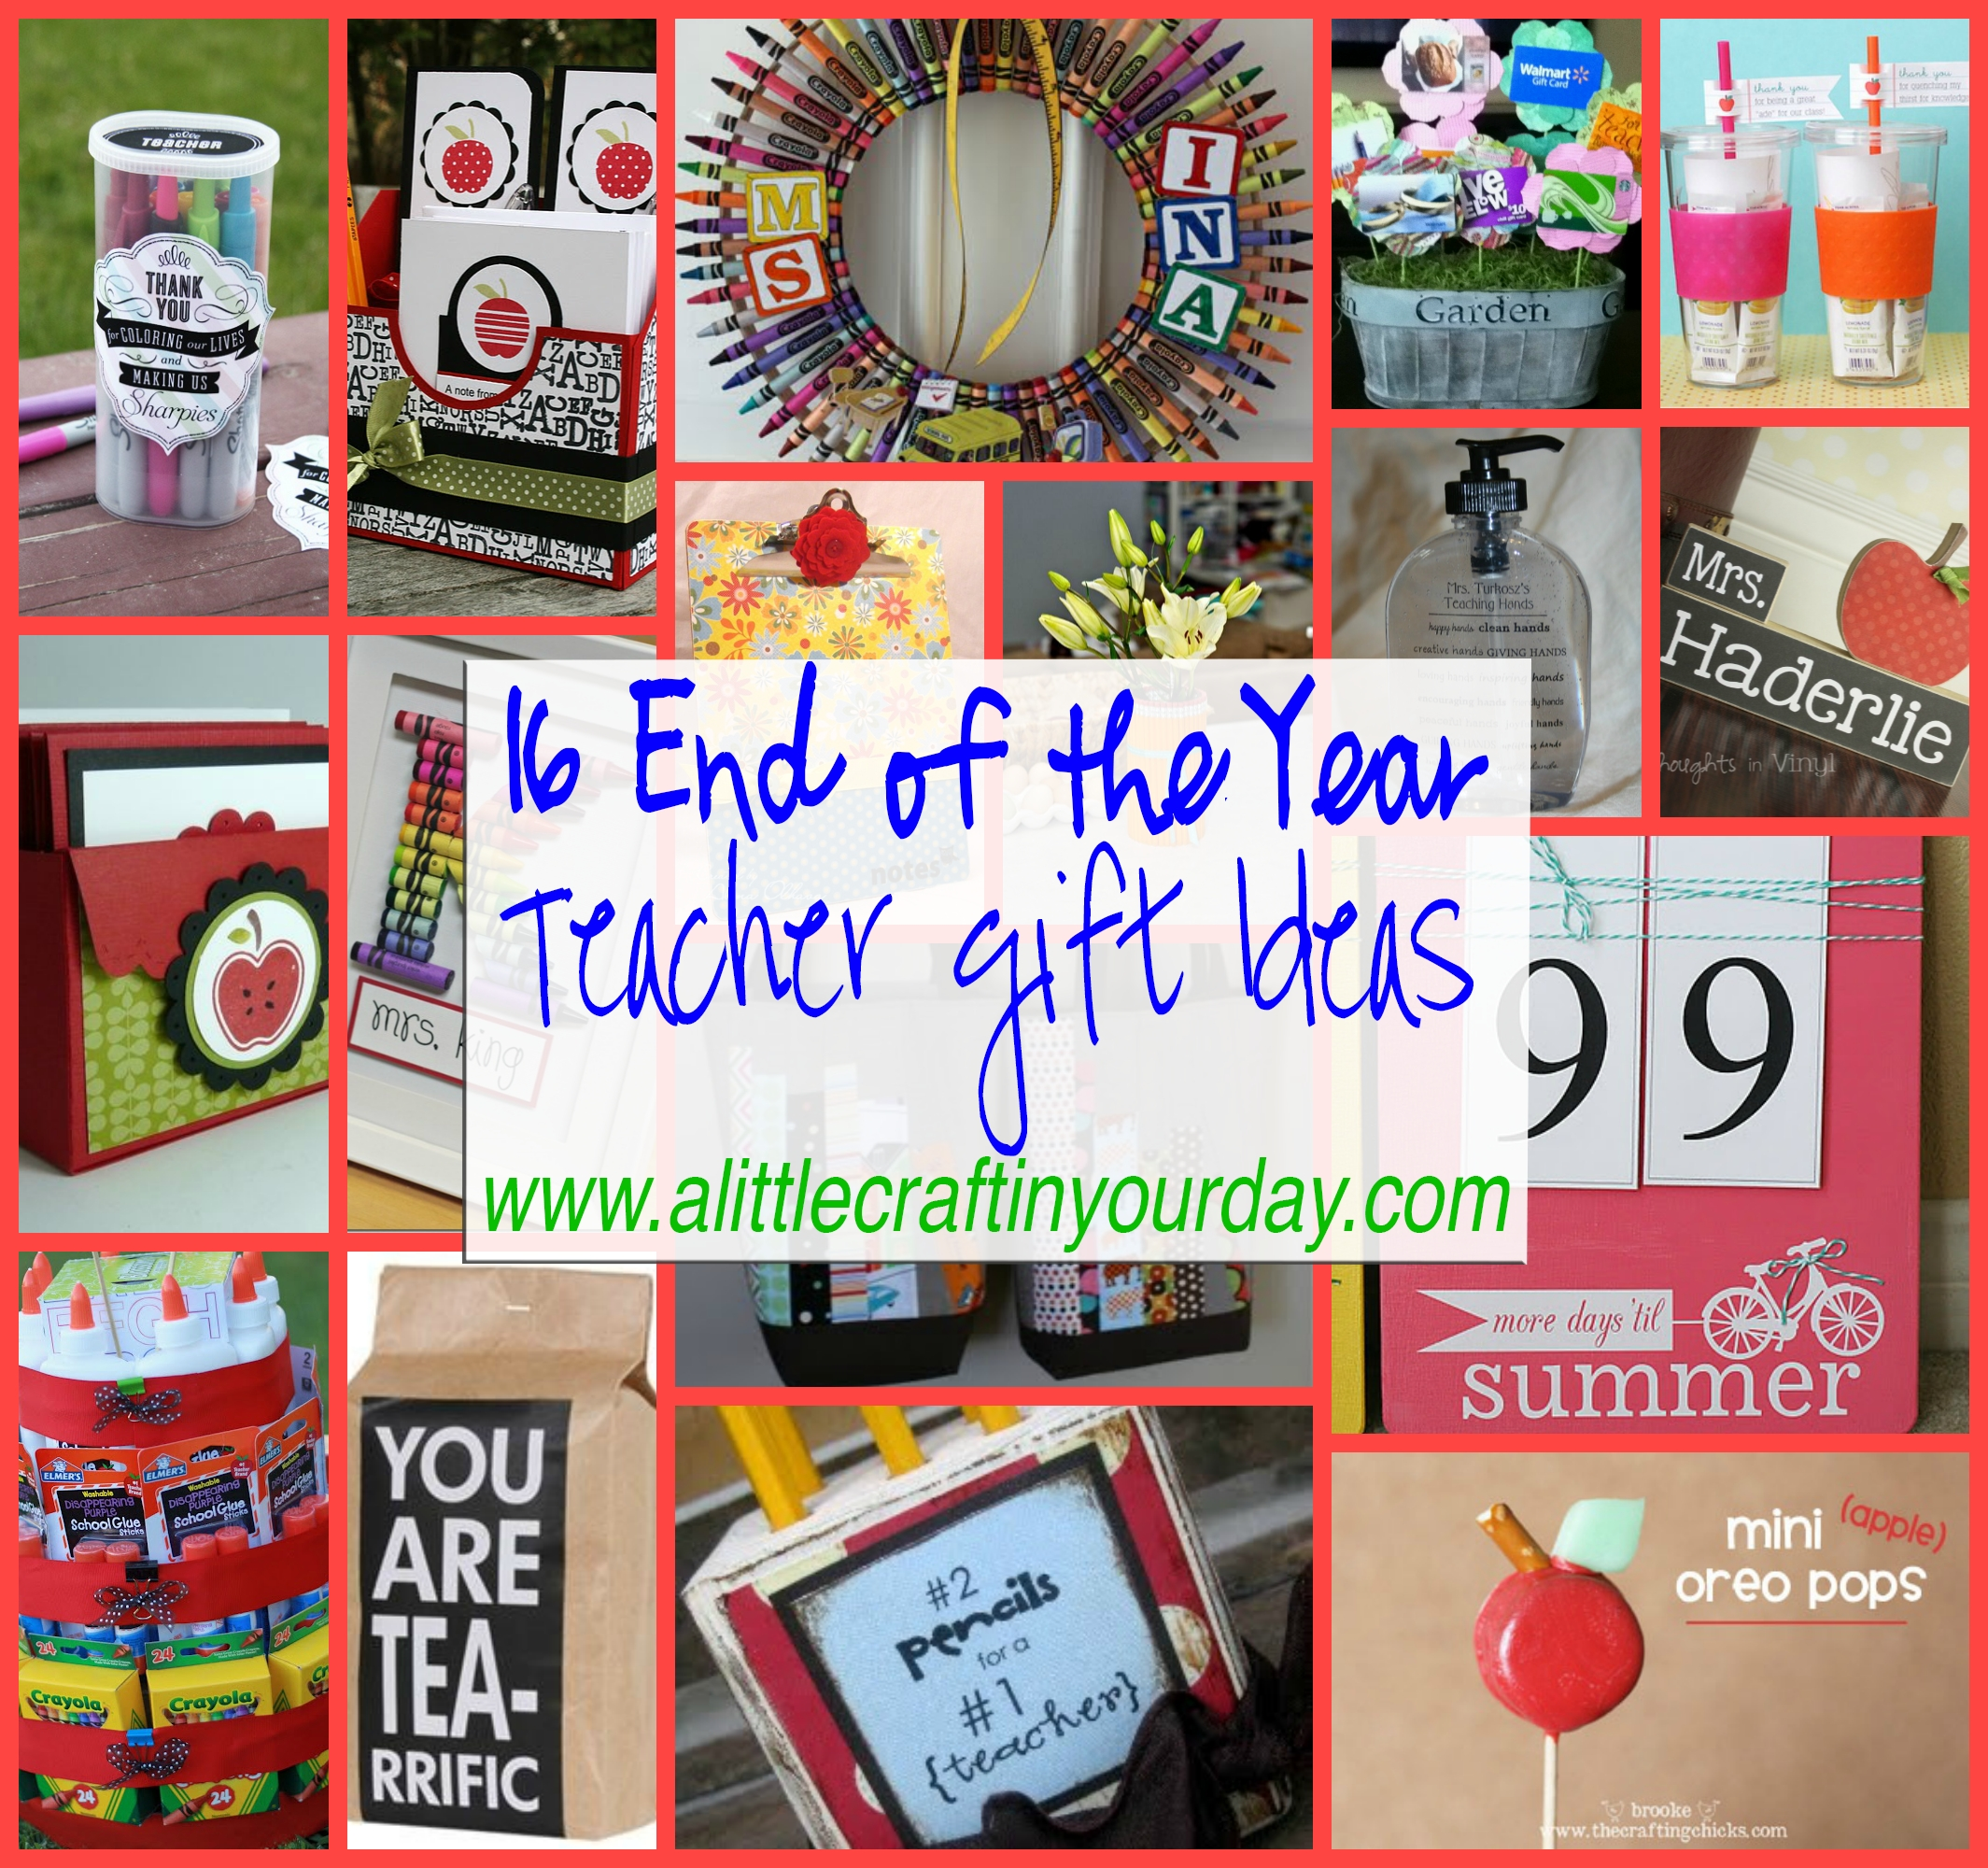 10 Stylish End Of The Year Teacher Gift Ideas 16 end of the year teacher gift ideas a little craft in your day 4 2021